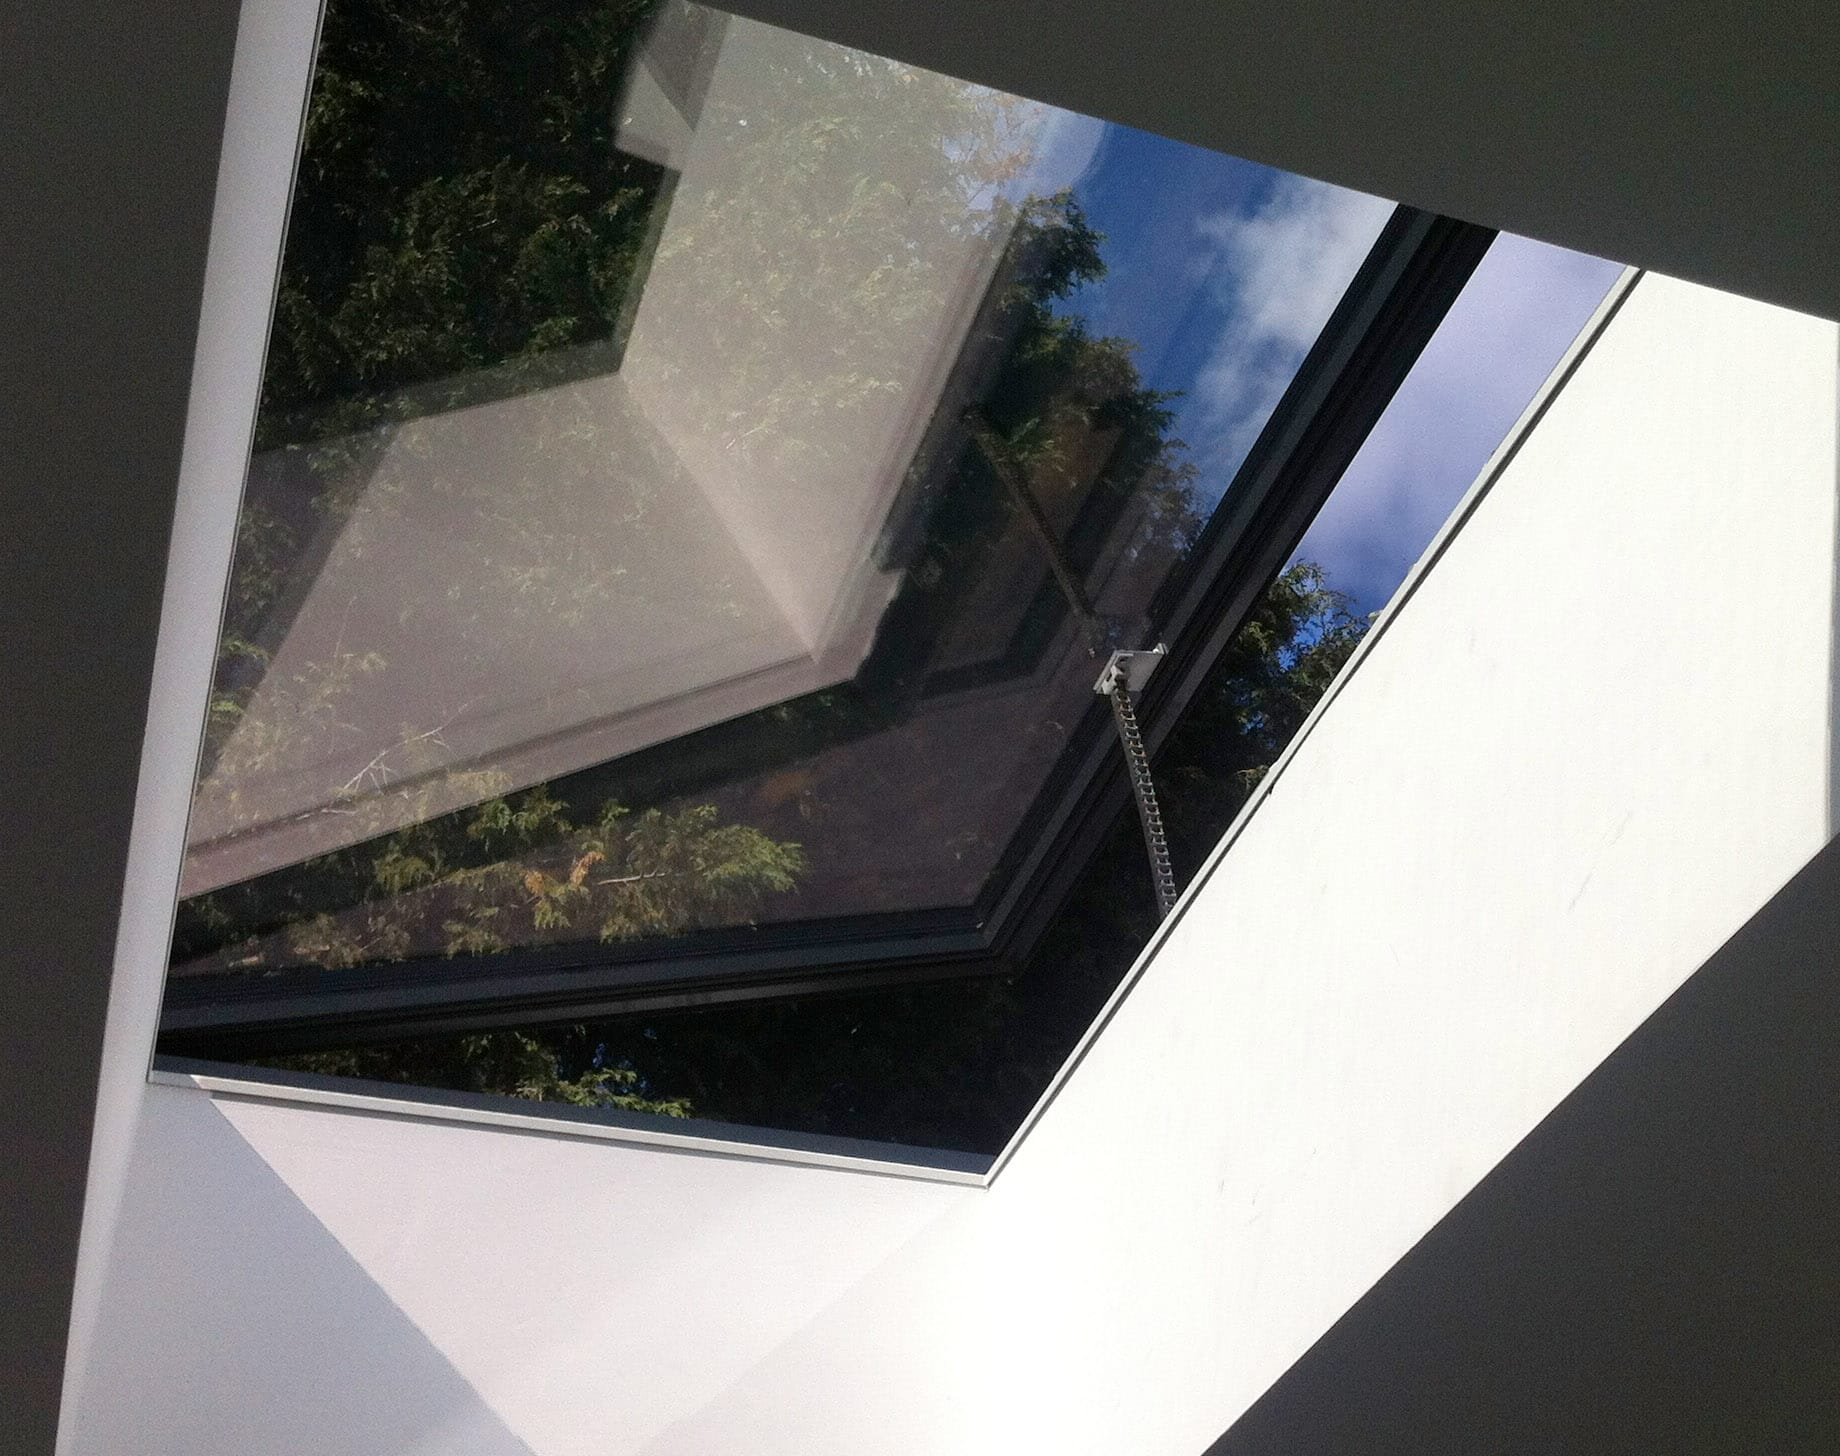 commercial ARES venting rooflight by IQ Glass